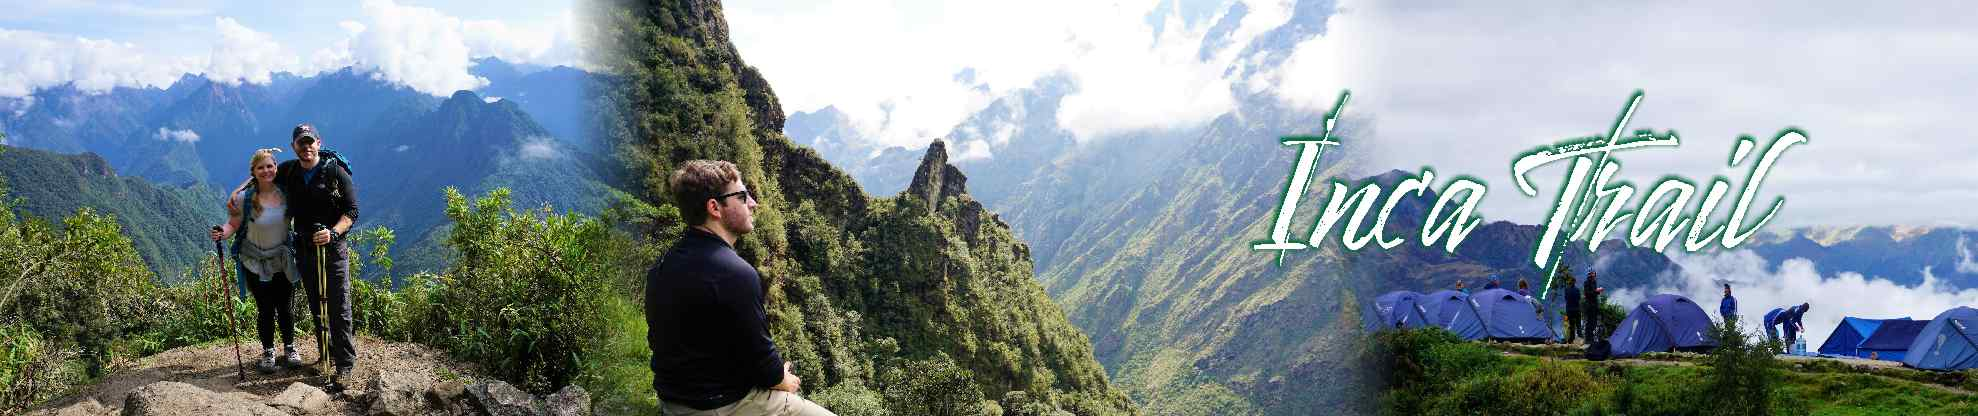 Inca Trail Trek to Machu Picchu, the best trek in South America